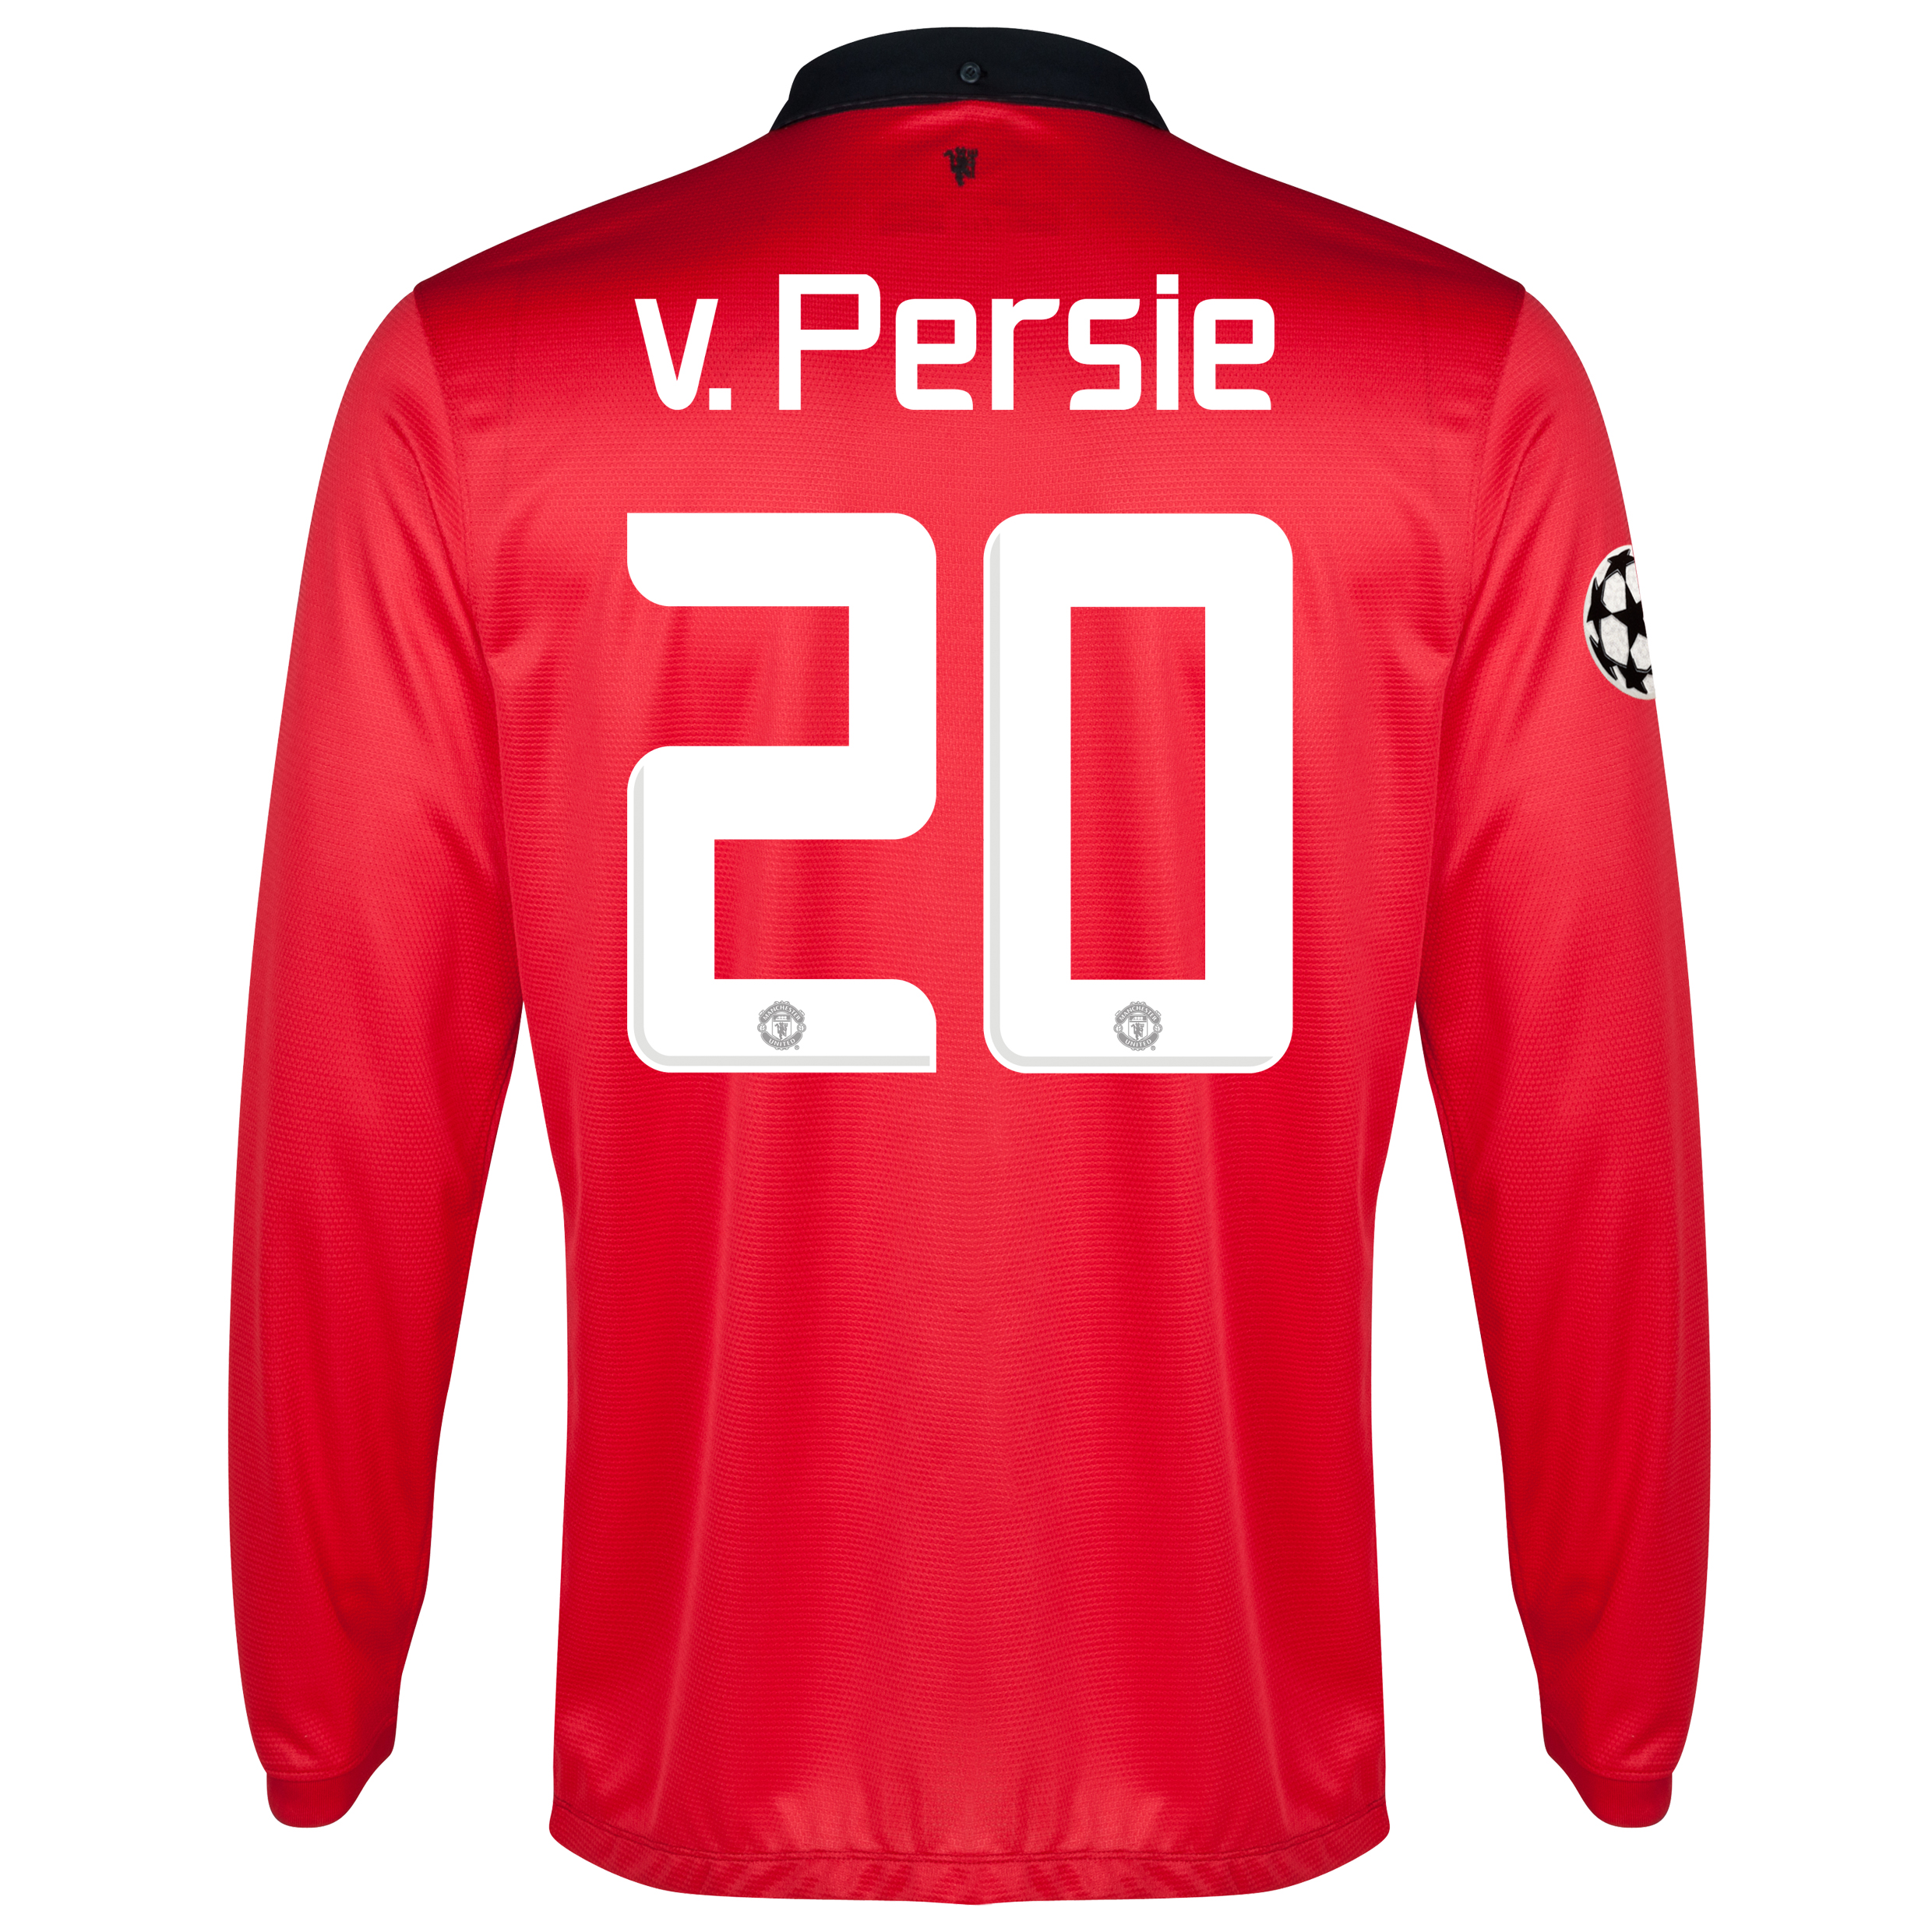 Manchester United UEFA Champions League Home Shirt 2013/14 - Long Sleeved with v.Persie 20 printing